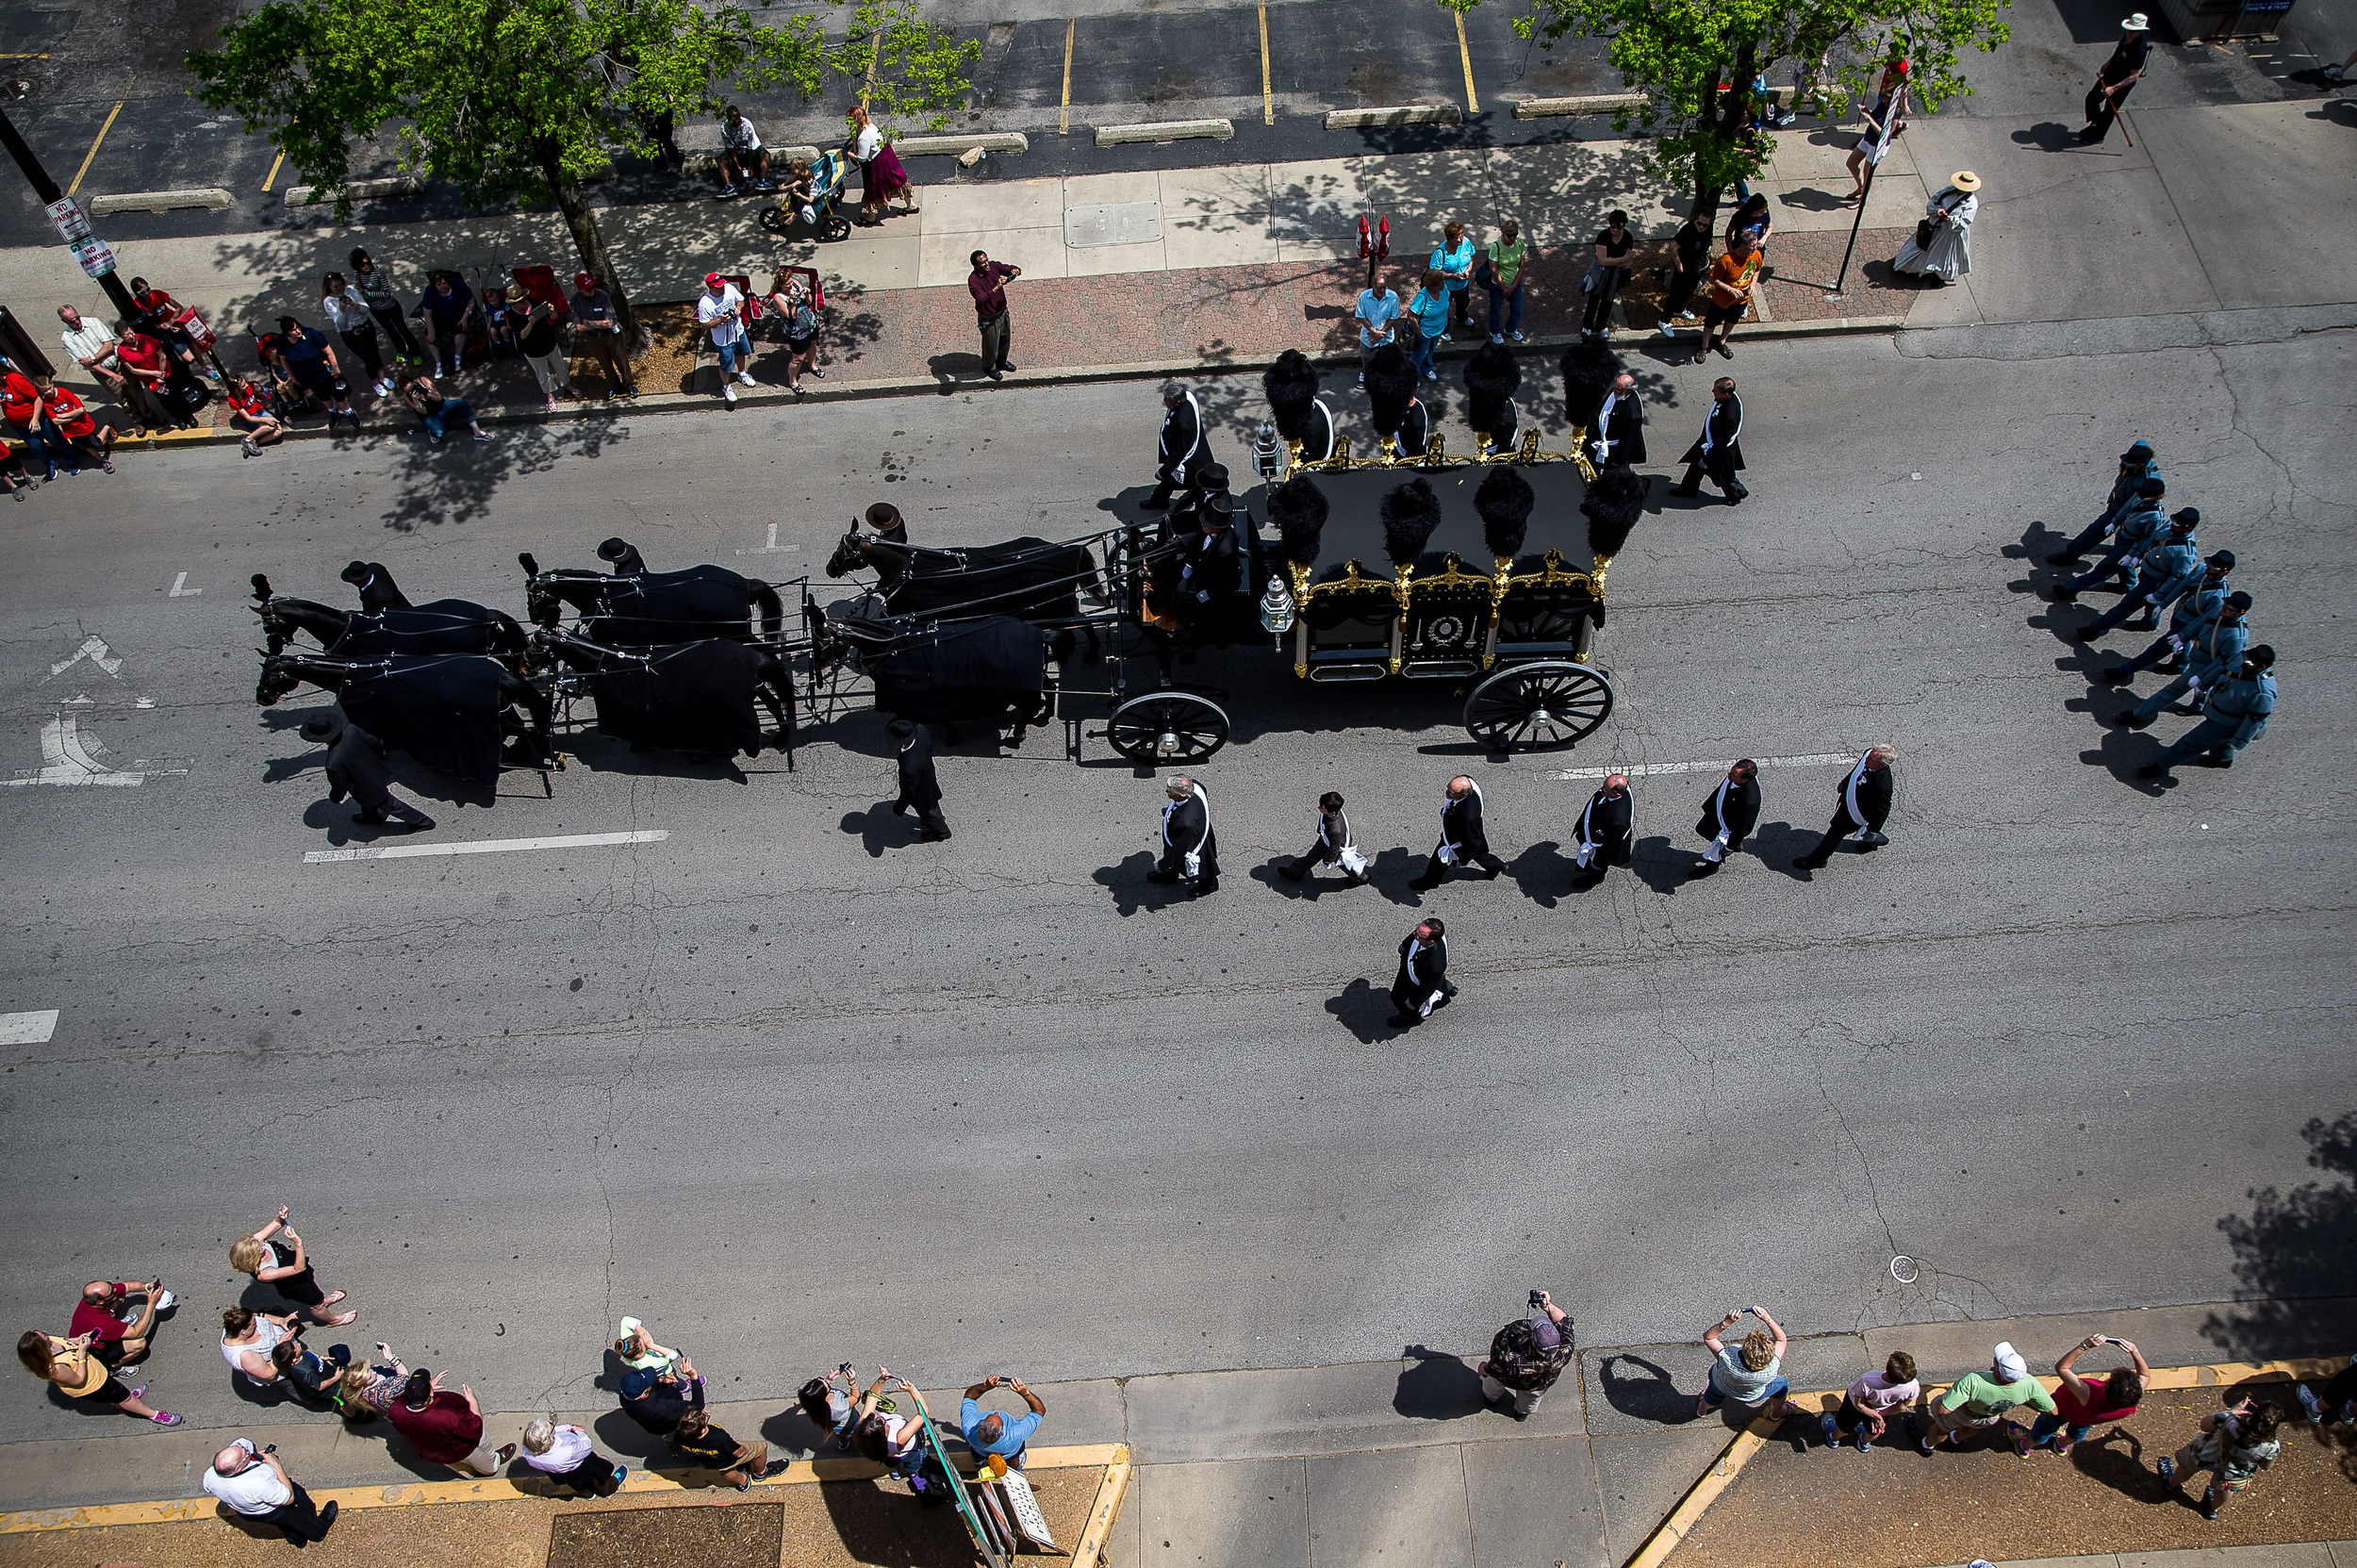 The horse drawn replica of Lincoln's hearse makes it's way up Fourth Street in route to Oak Ridge Cemetery during the 2015 Lincoln Funeral Re-enactment, Sunday, May 3, 2015, in Springfield, Ill. Justin L. Fowler/The State Journal-Register